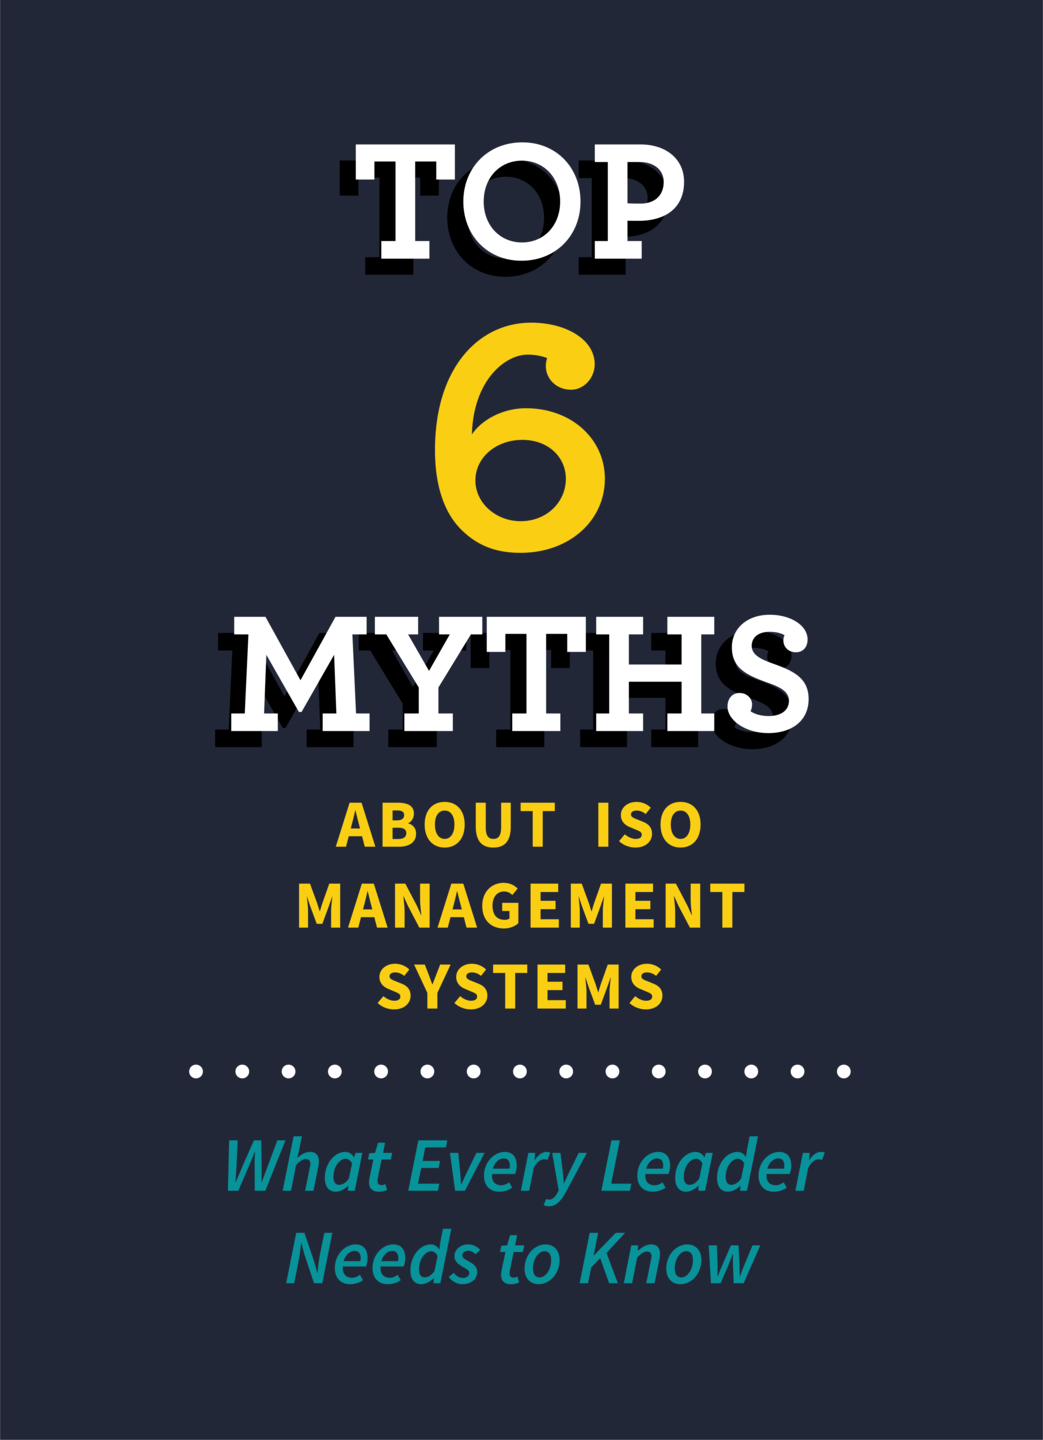 Top 6 Myths cover page